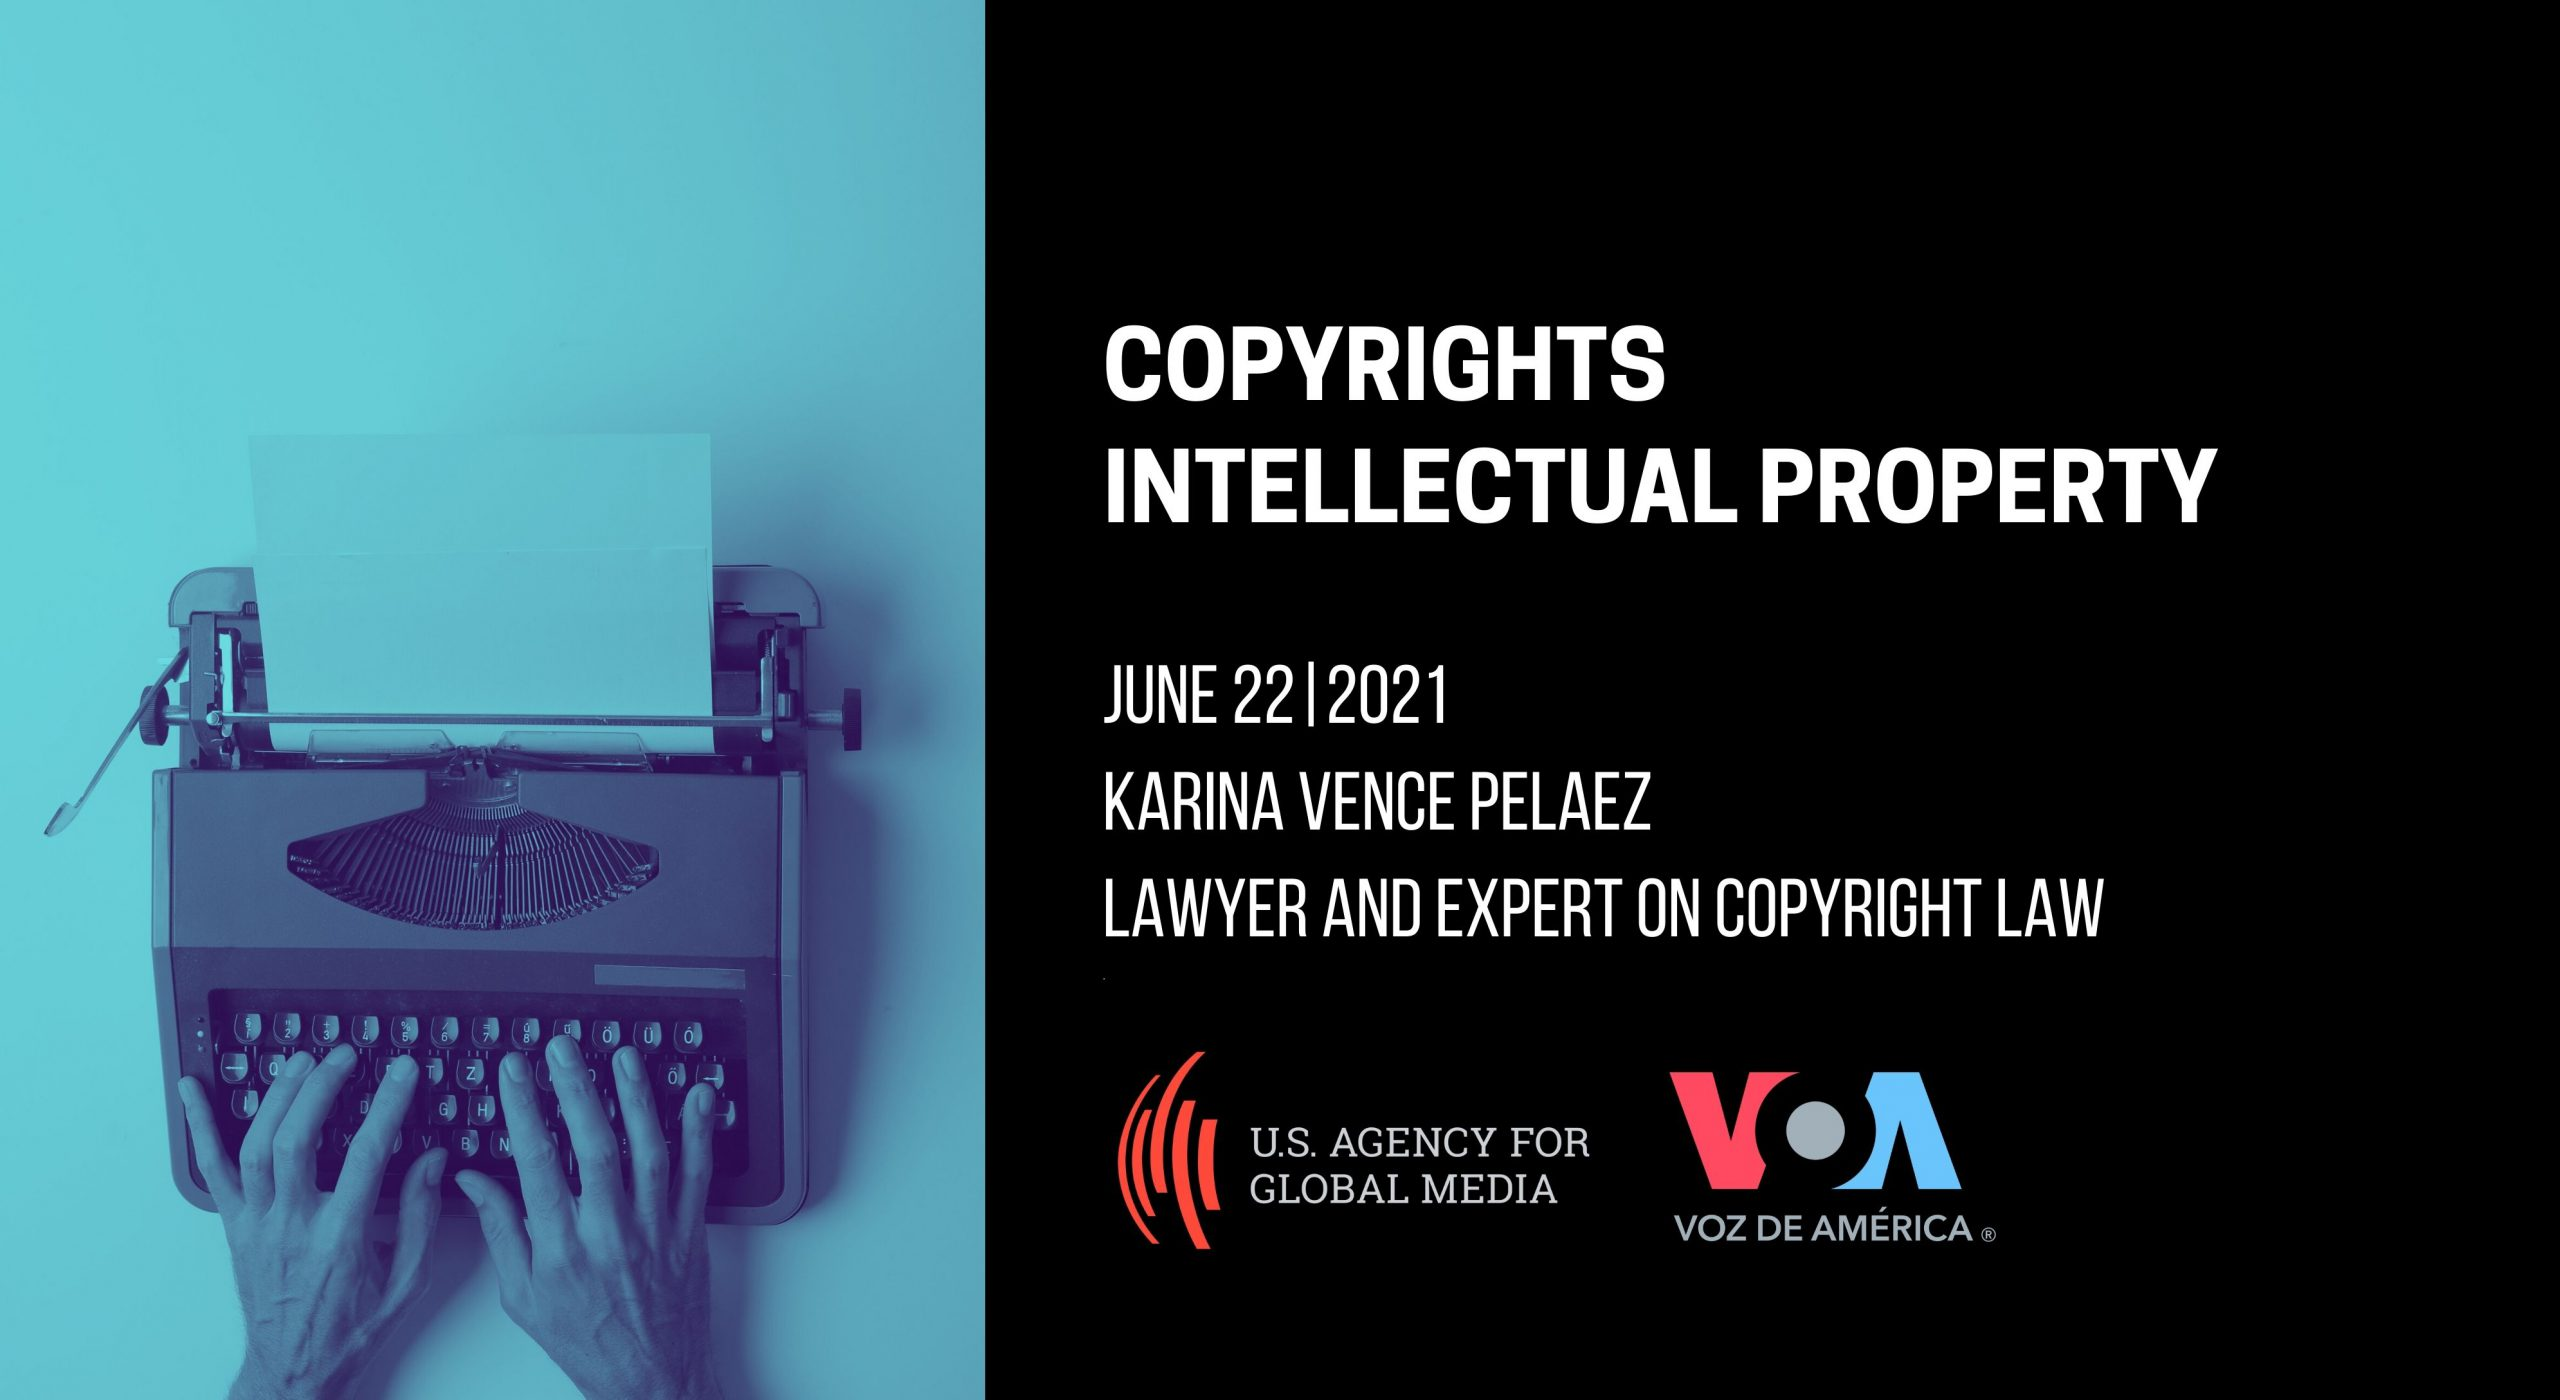 Latin America: Copyright and Intellectual Property